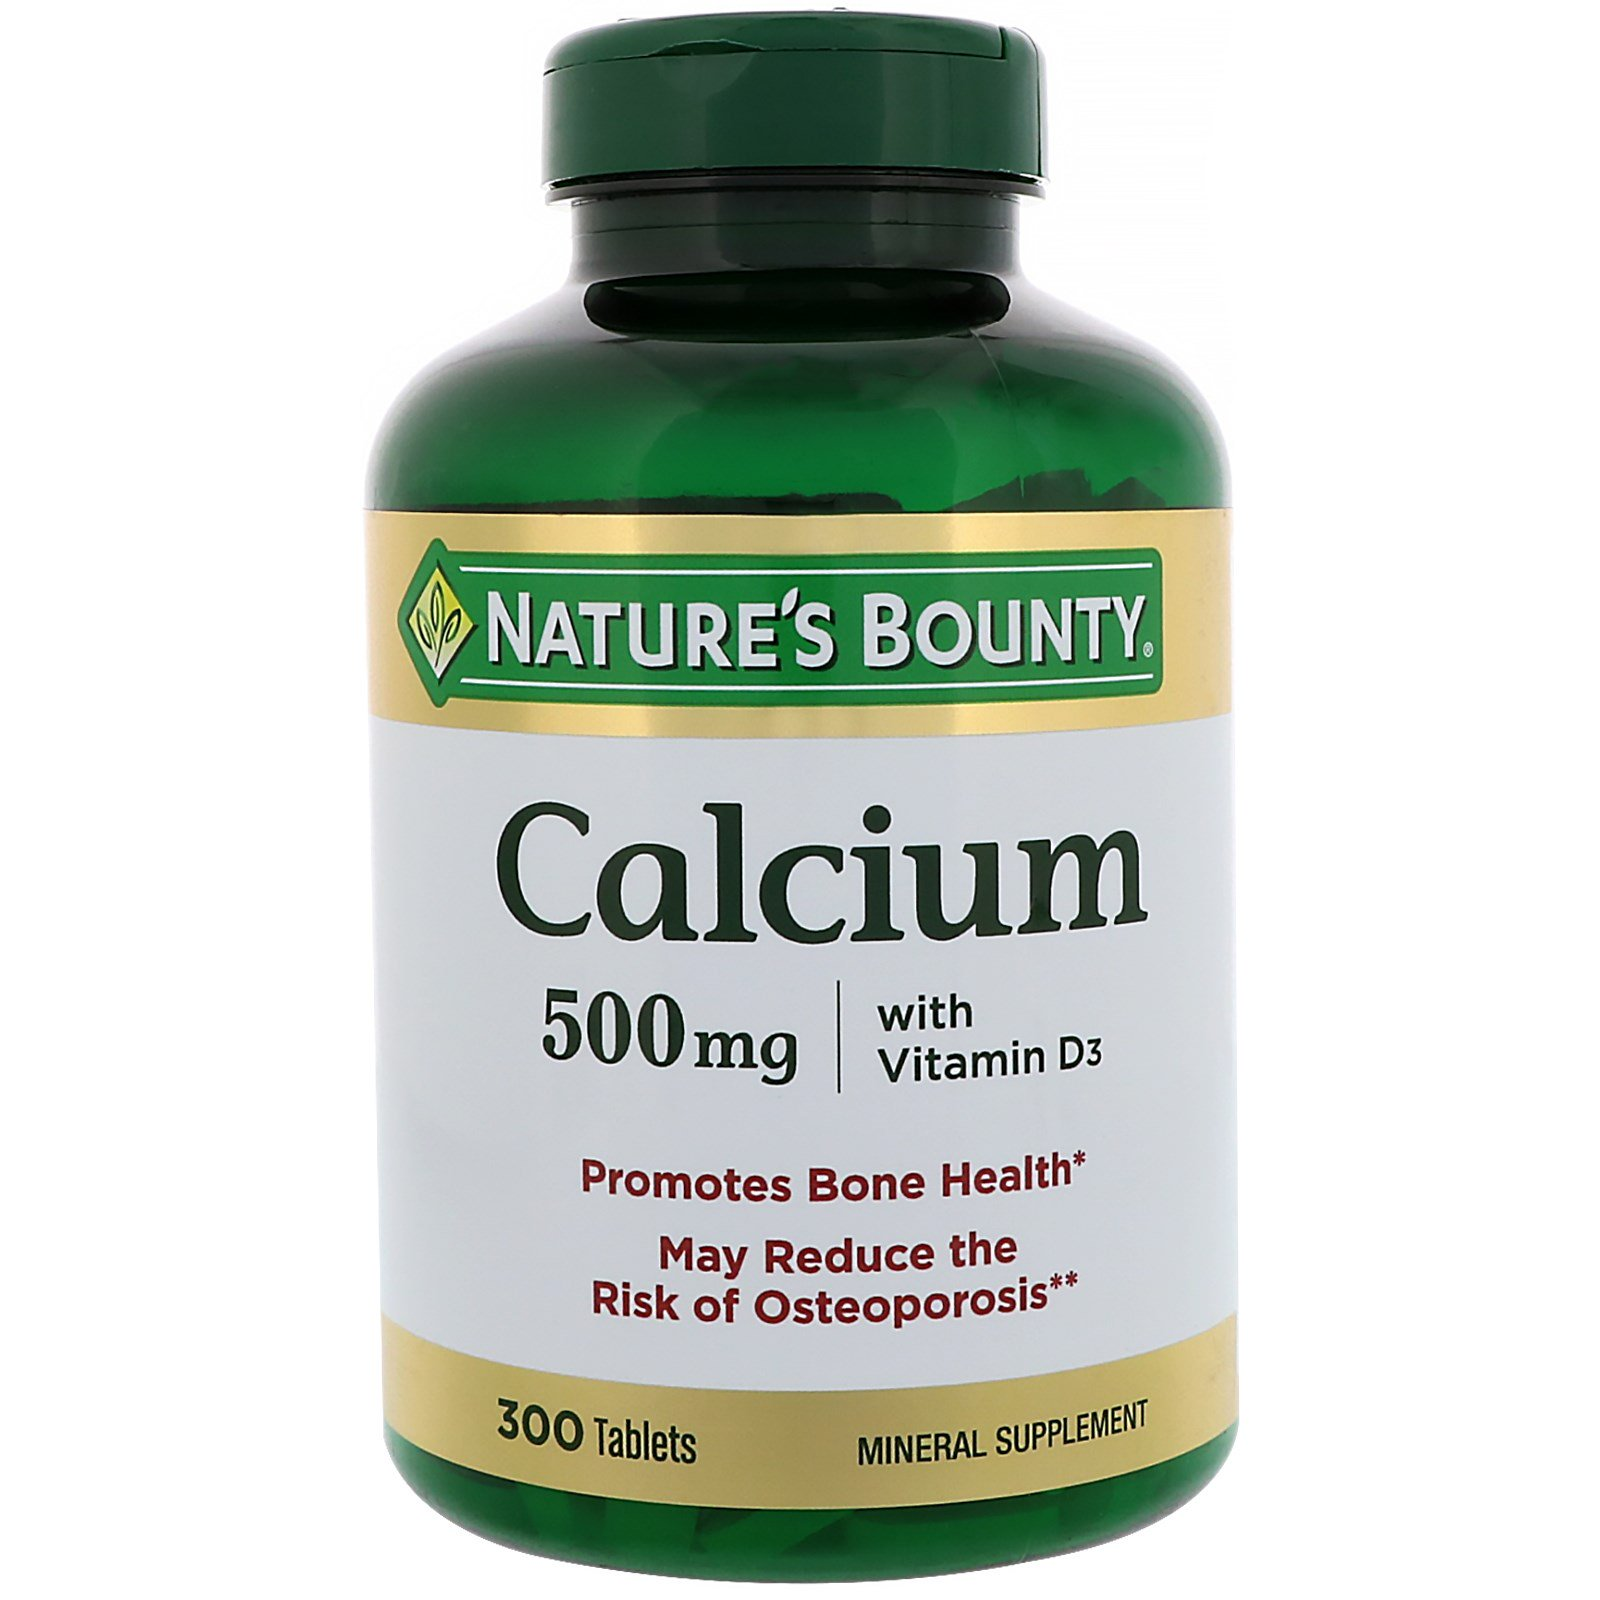 calcium online dating Cvs health calcium 600mg & vitamin d3 tablets, 120ct at cvs pharmacy   prices may vary from online to in store change  expiration date too soon.